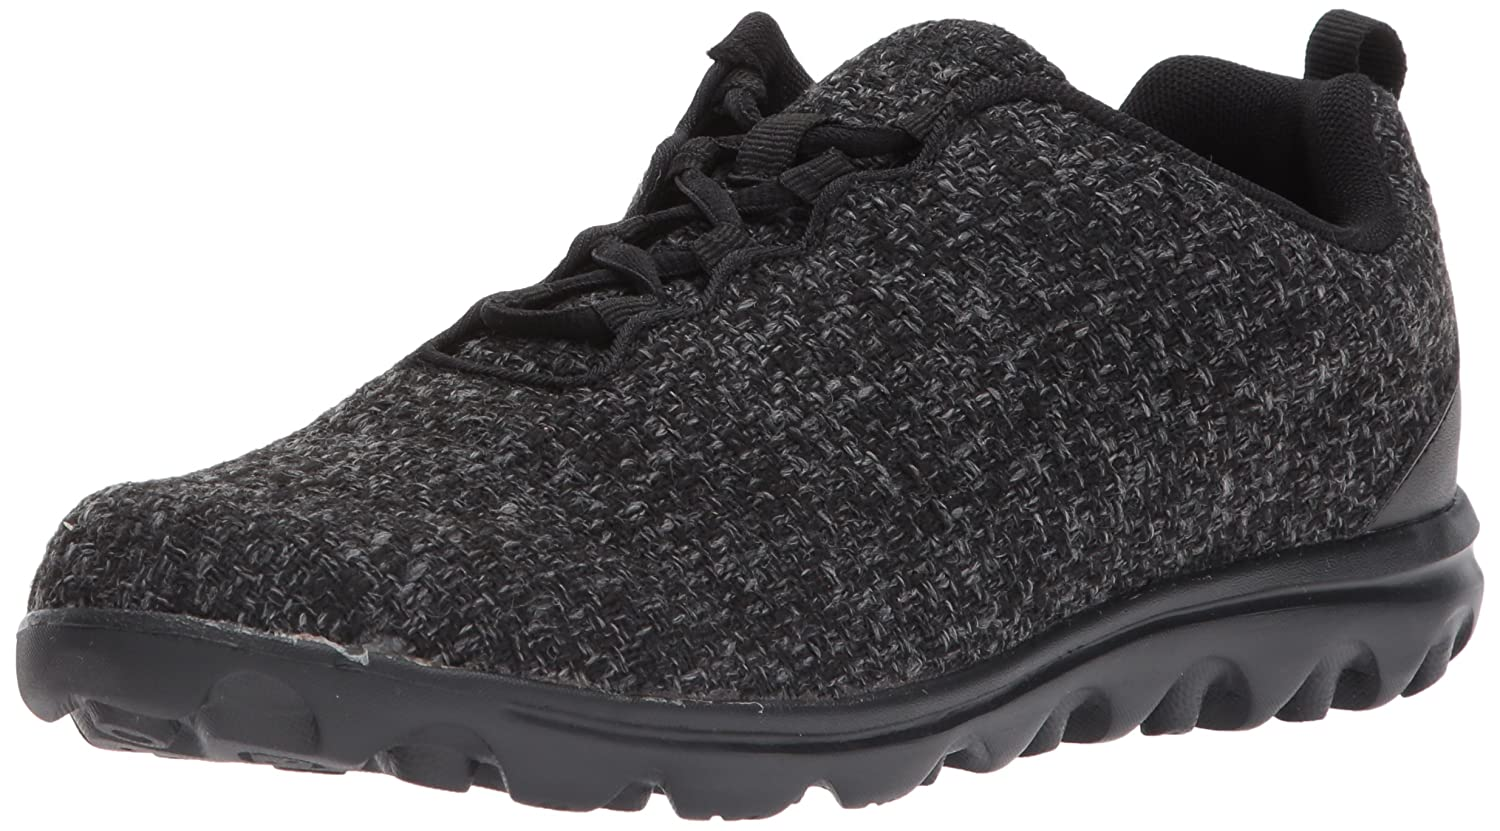 Propet Women's TravelActiv Woven Walking Shoe B01MQQLPD3 11 2E US|Dark Grey